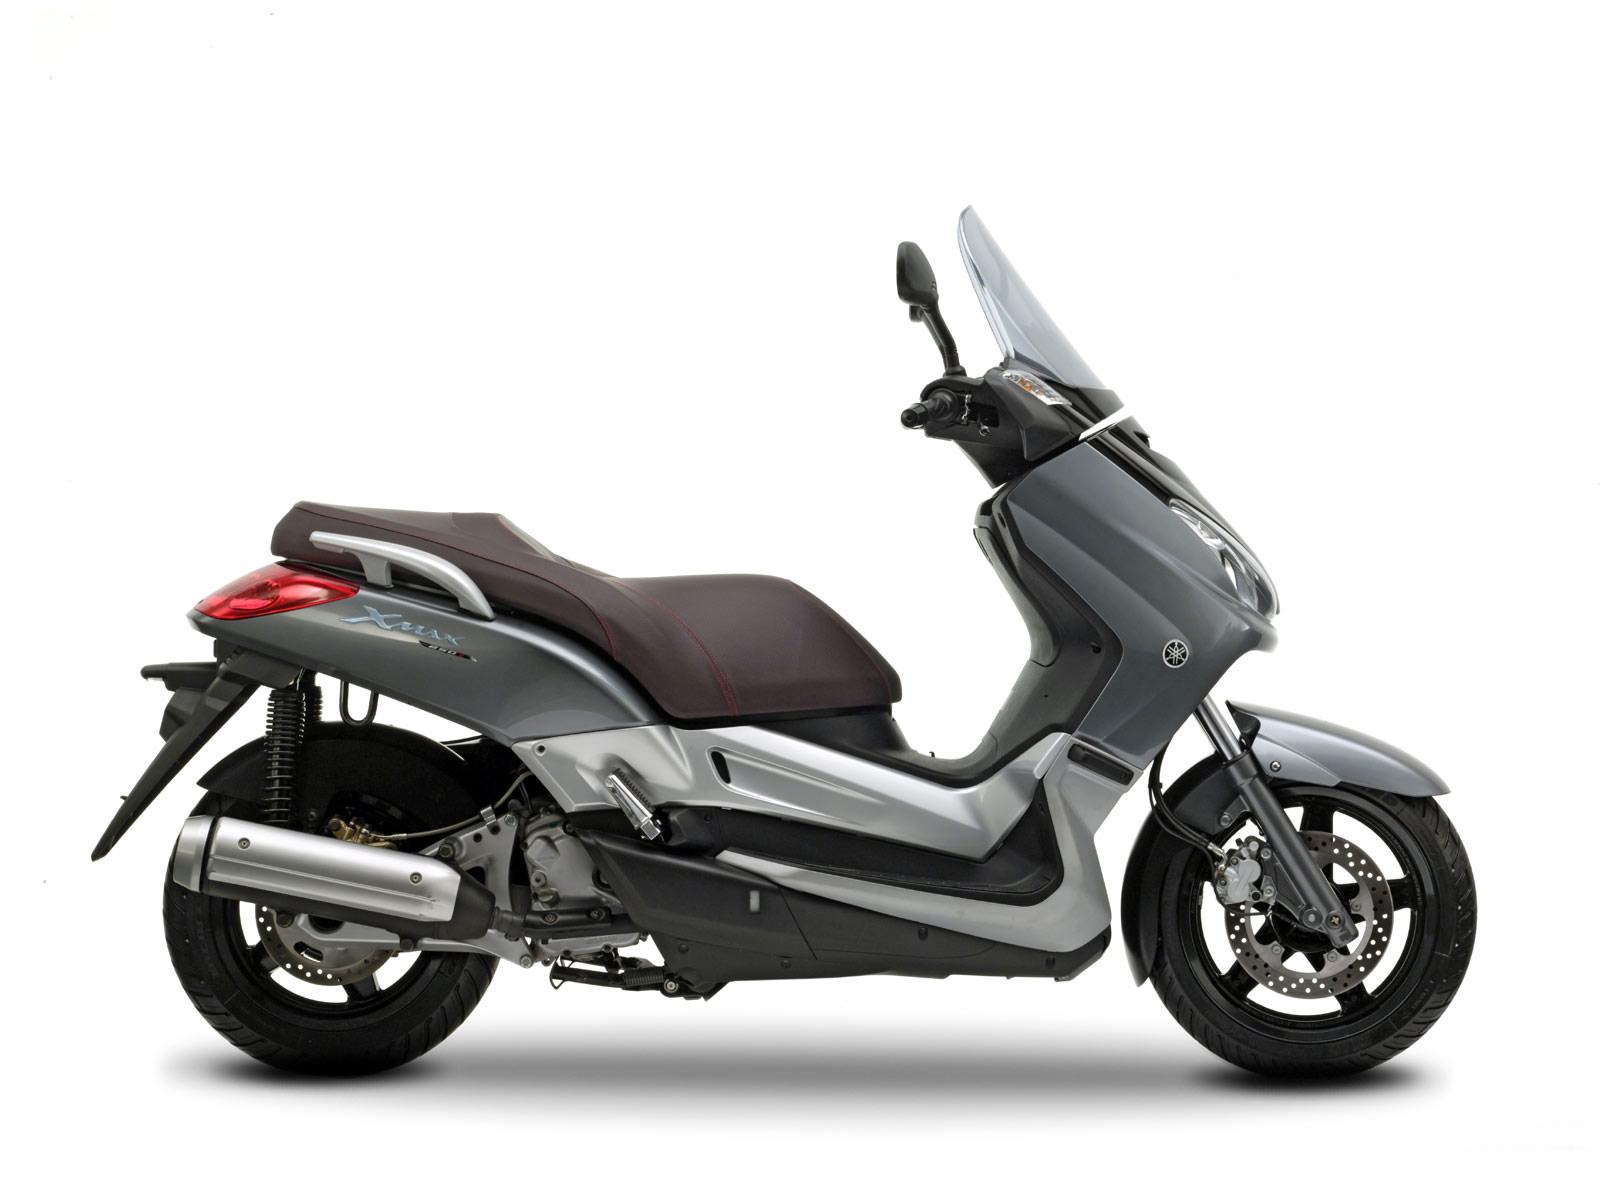 Yamaha Scooter Pictures 2008 X Max 250